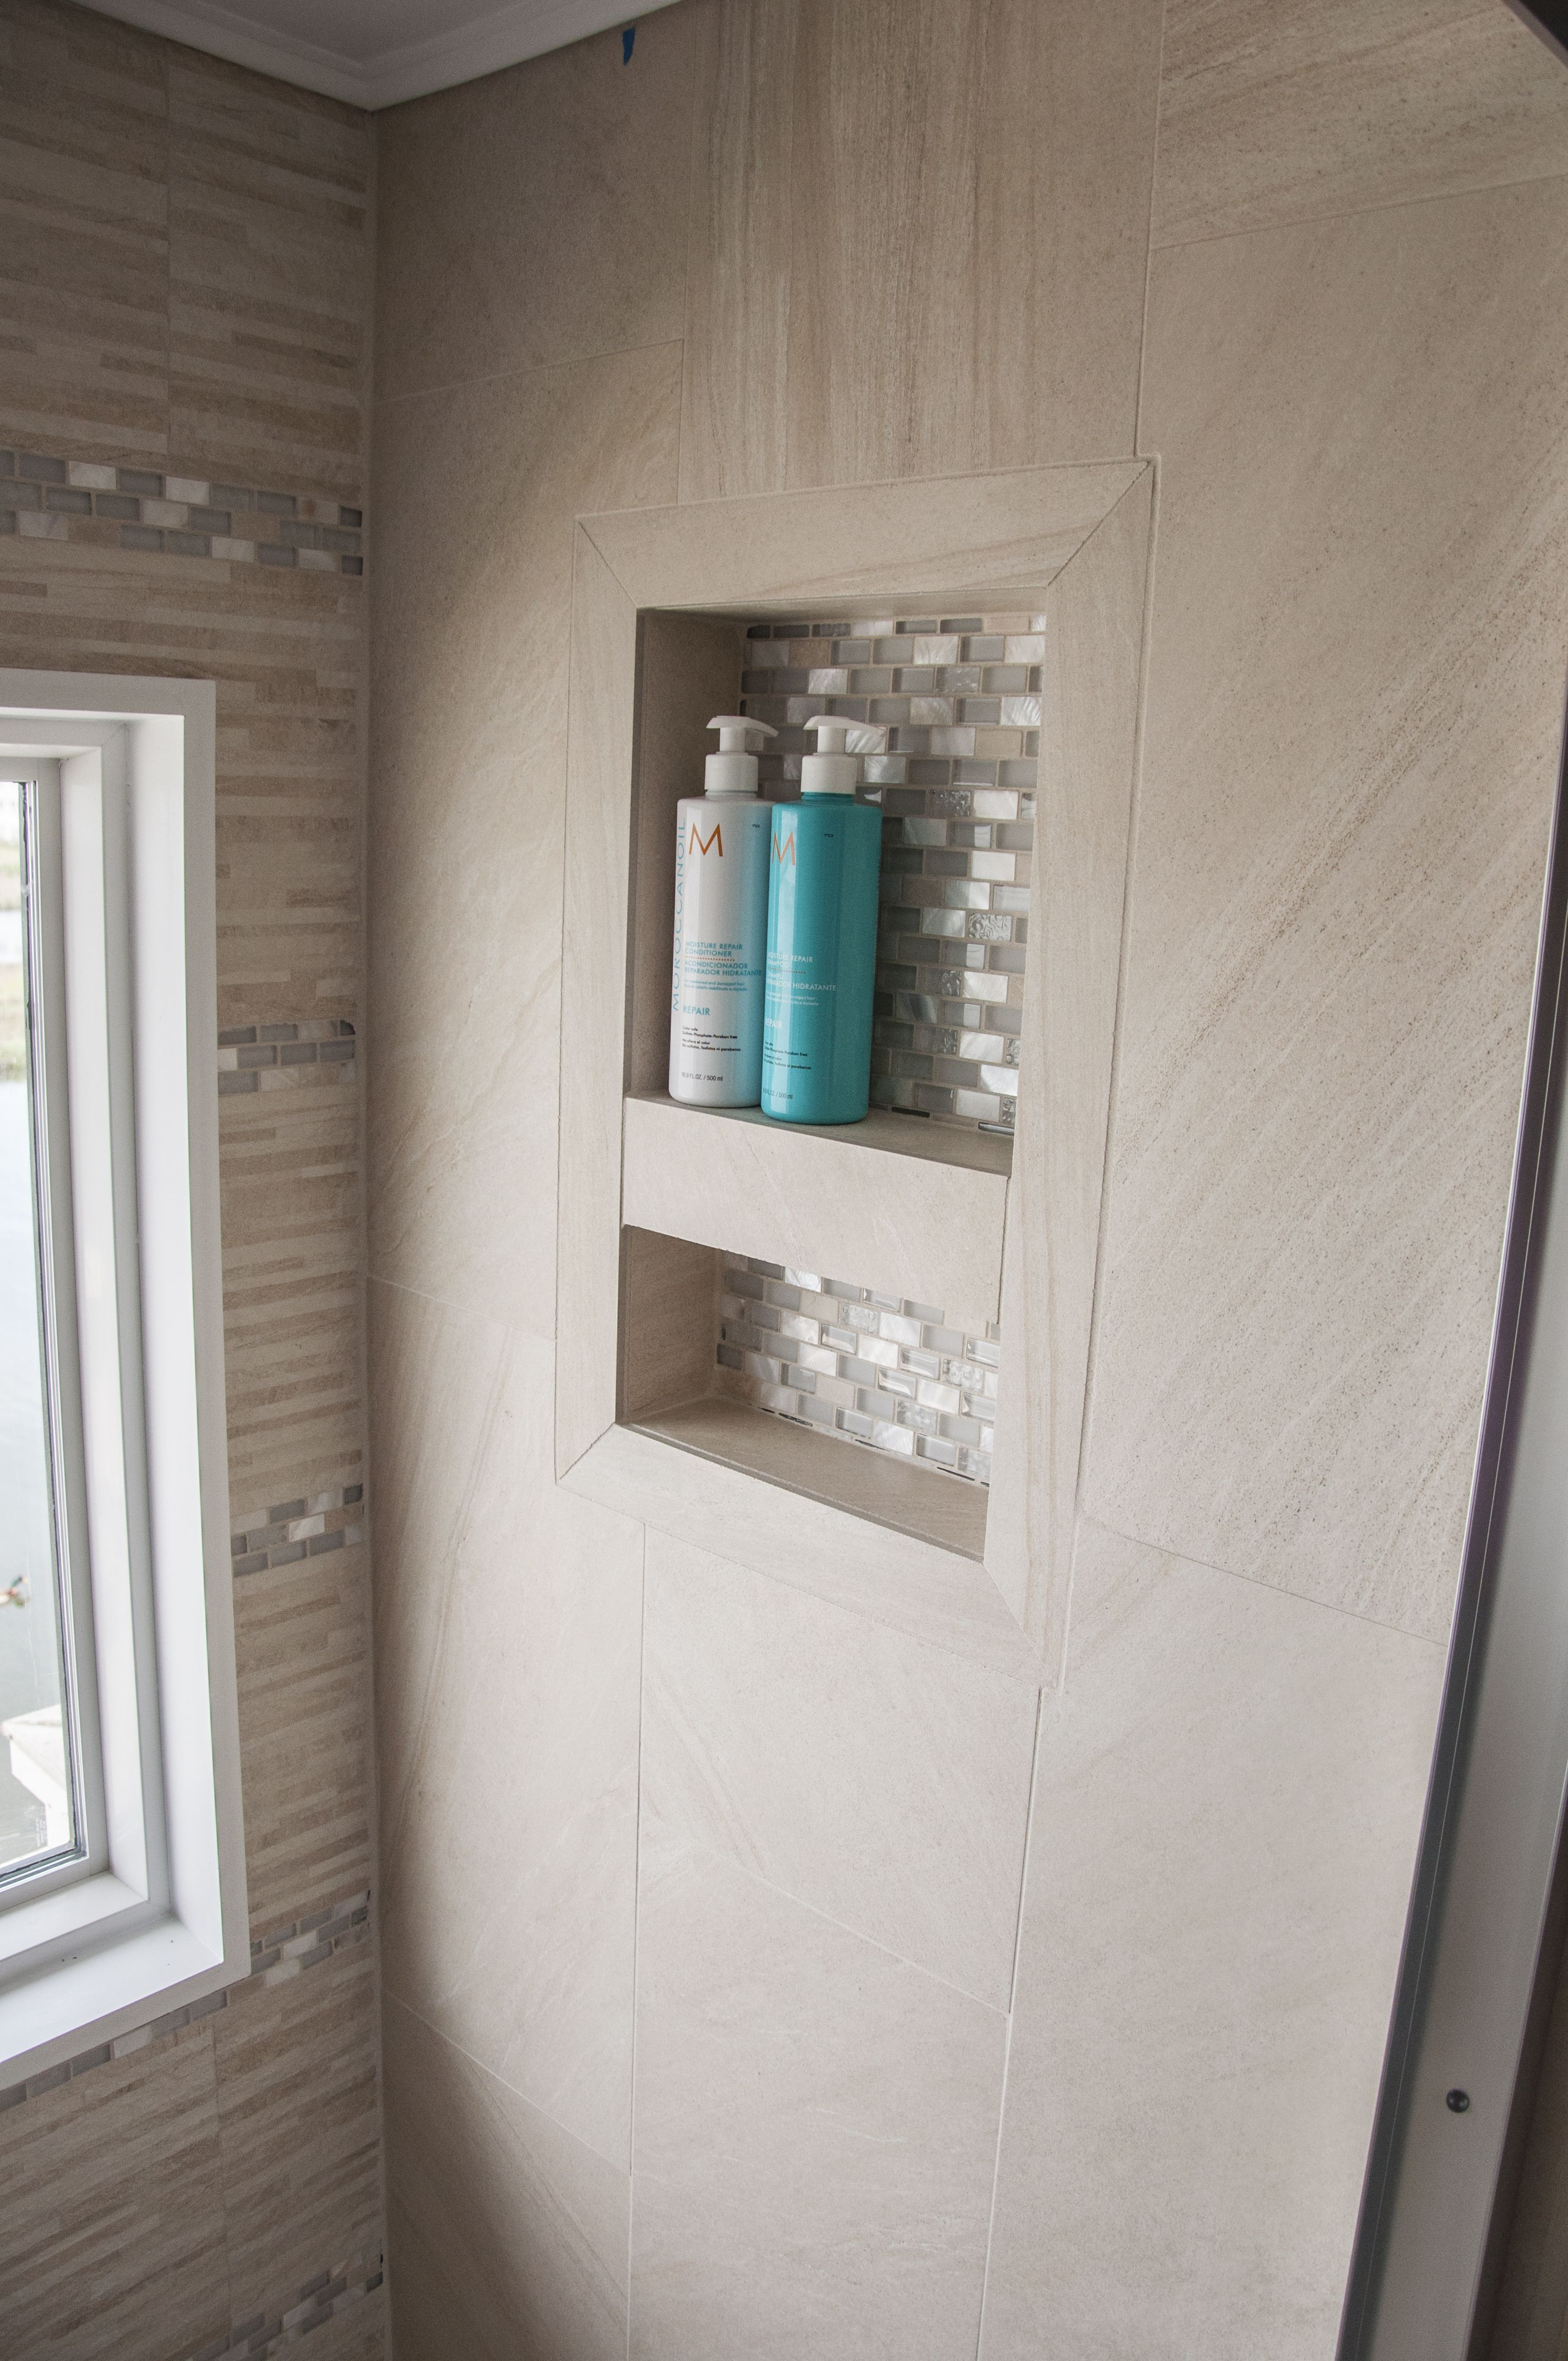 Bathroom Remodel- Done by McCarthy and Son Contracting. Ocean City, MD